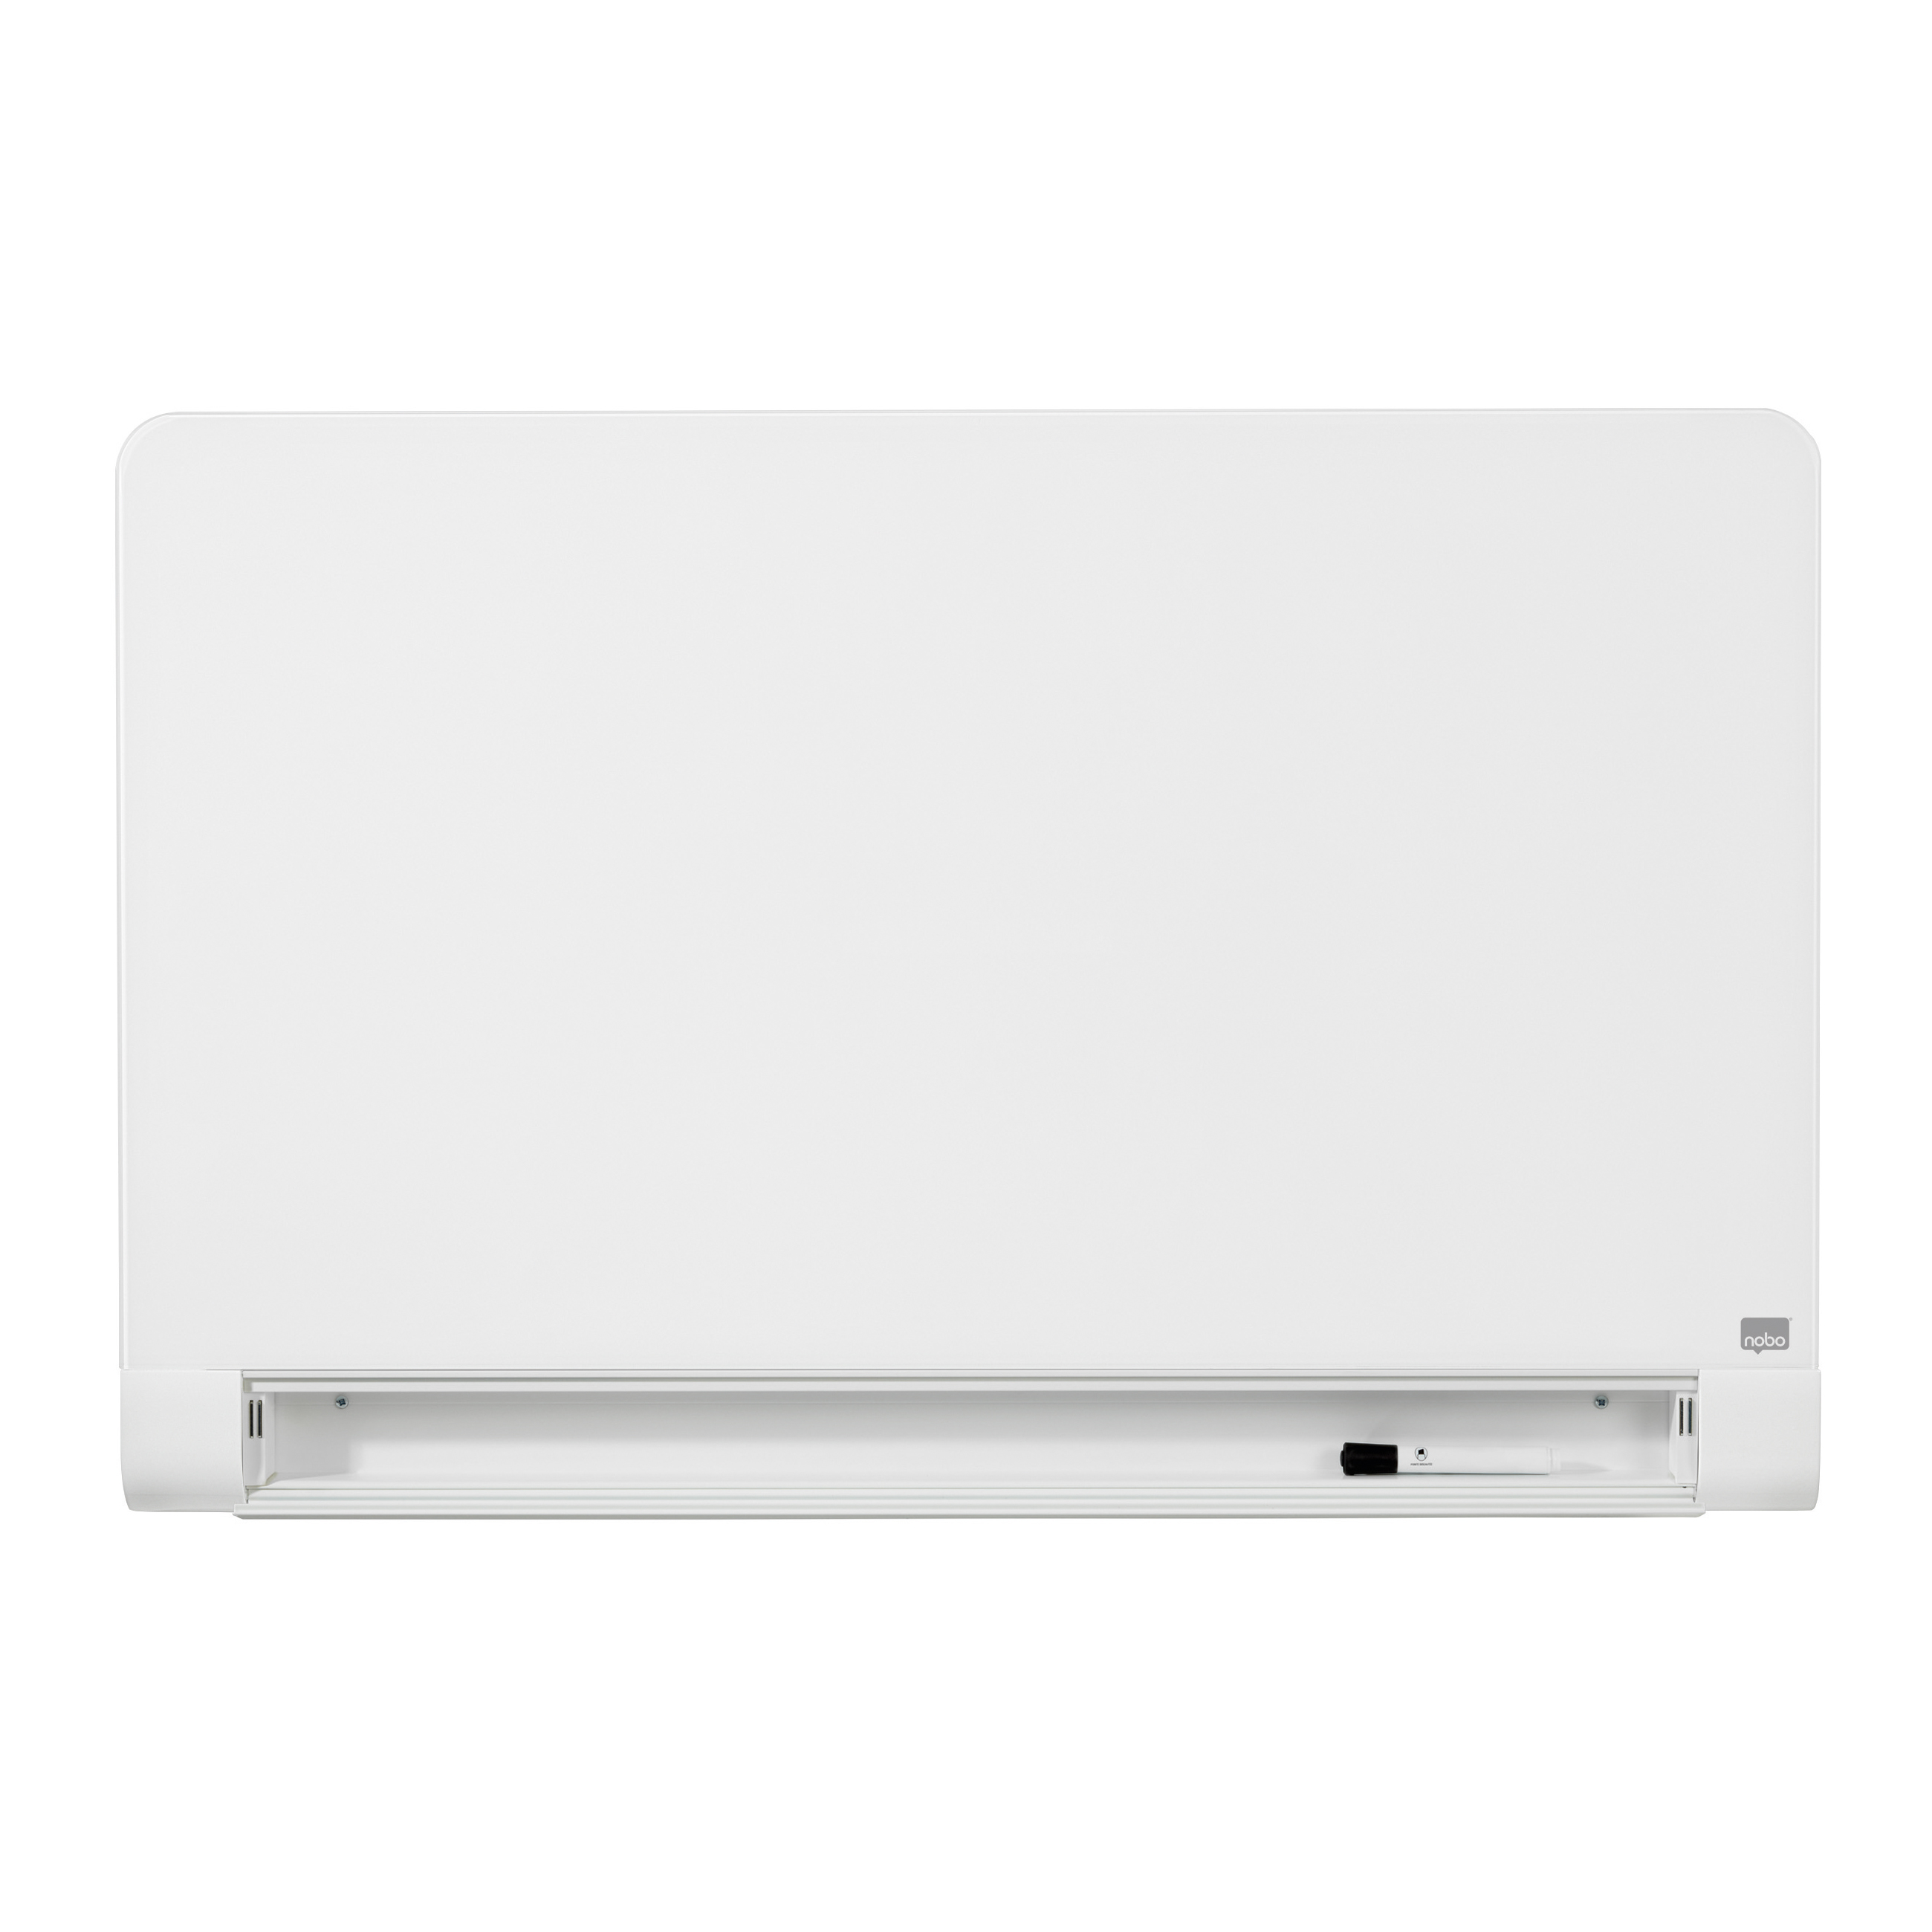 Nobo Widescreen 57 inch WhiteBoard Glass Rnd Cnr Magnetic Fixing Inc W1264xH711mm Brill White Ref 1905192